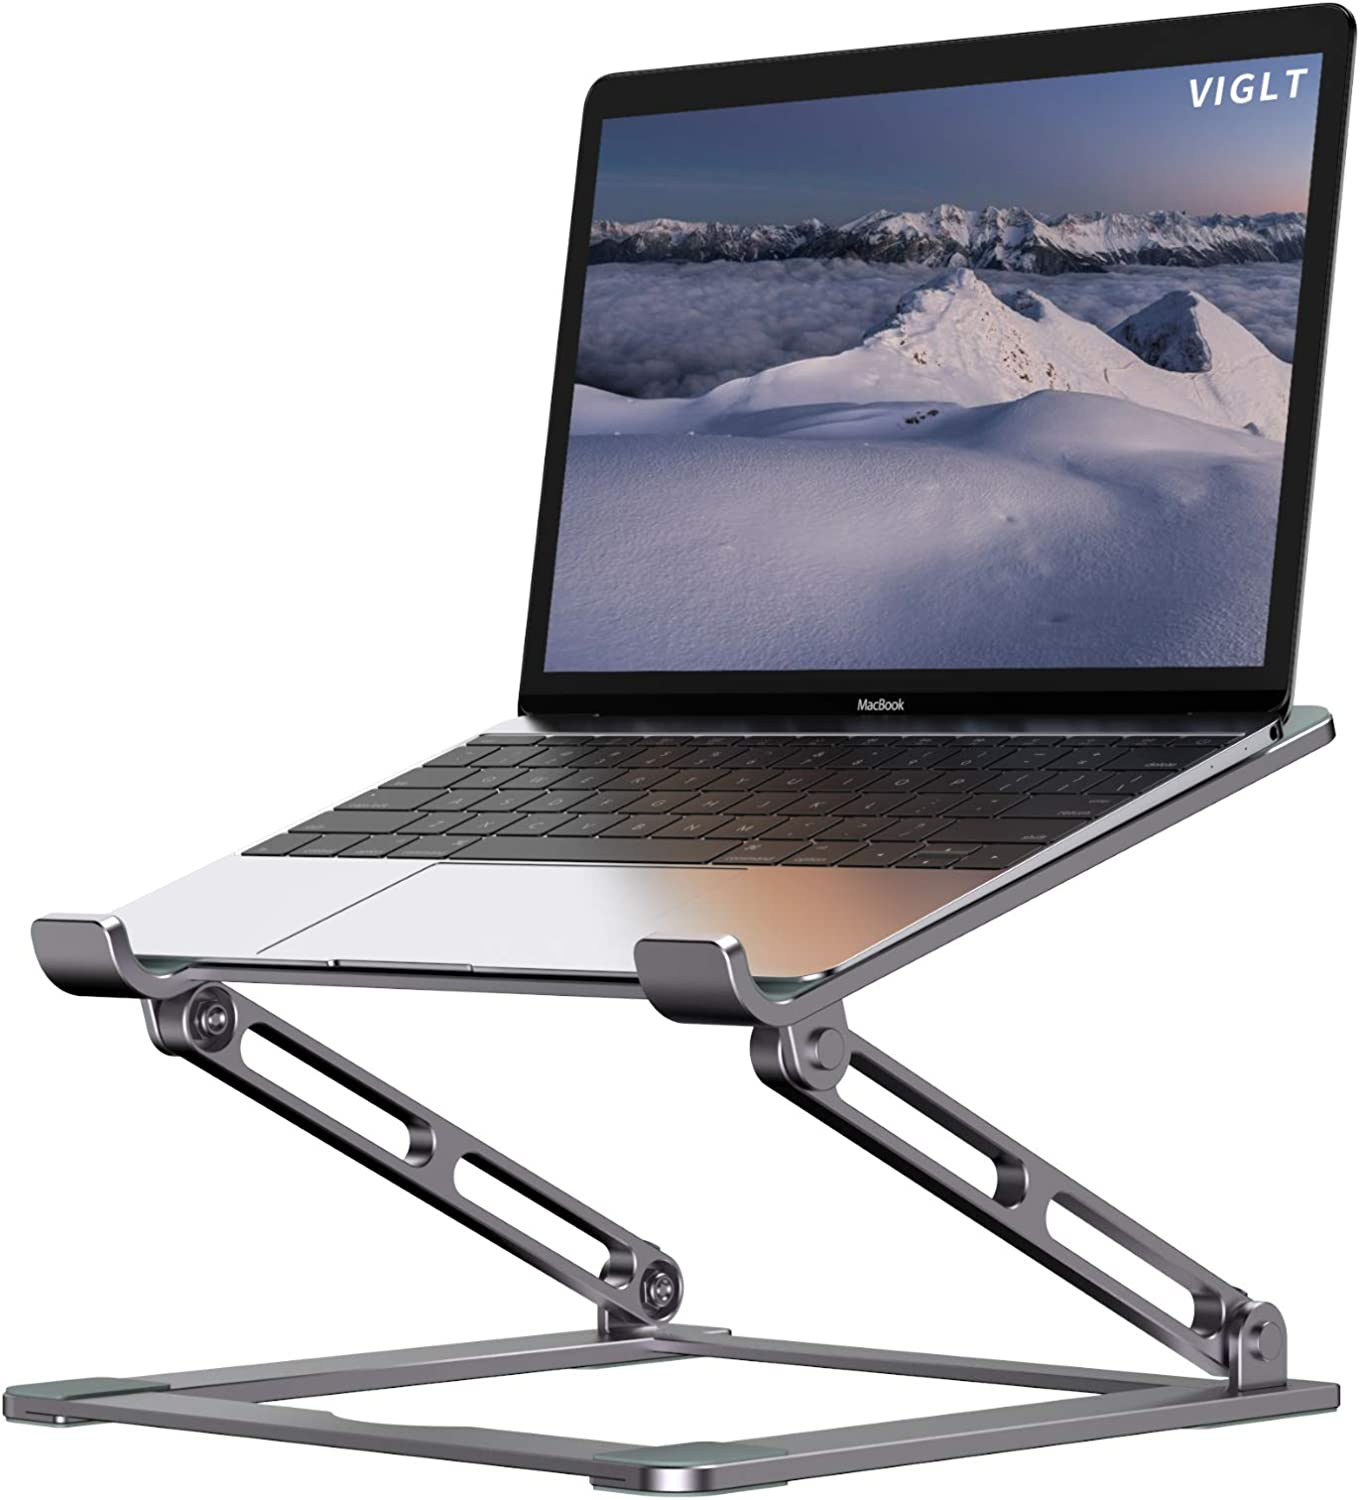 Laptop Stand for Desk, Adjustable Laptop Stand Holder Portable Laptop Riser with Multi-Angle Height Adjustable Computer Stand for MacBook Air/Pro and More Notebooks 10-17.3